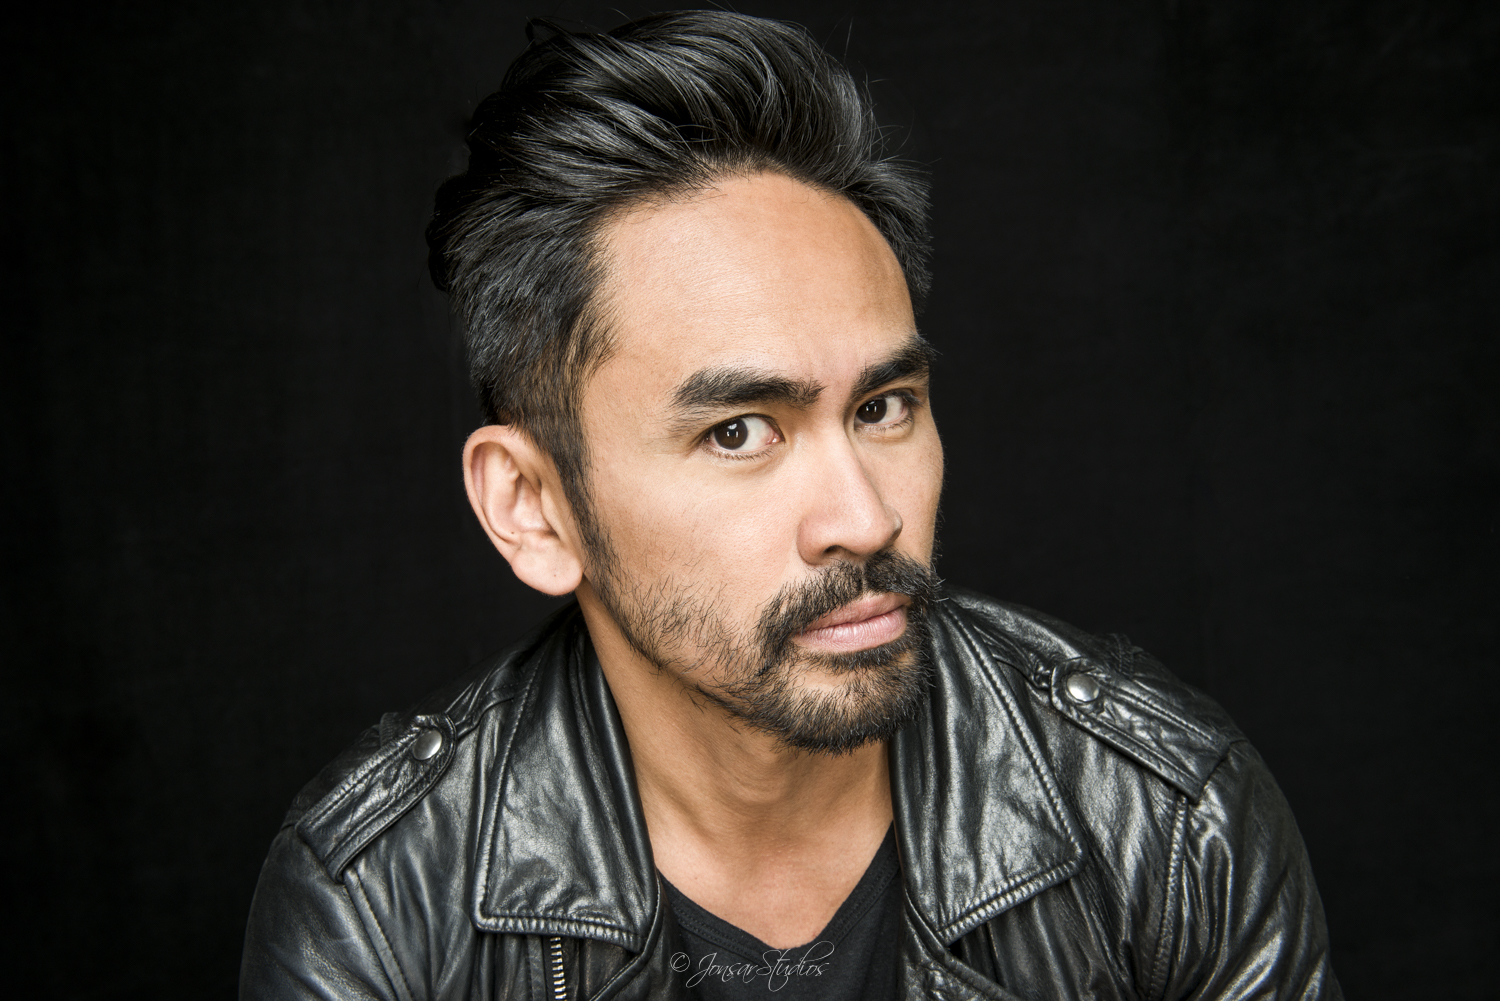 Portrait of man in leather jacket on black background